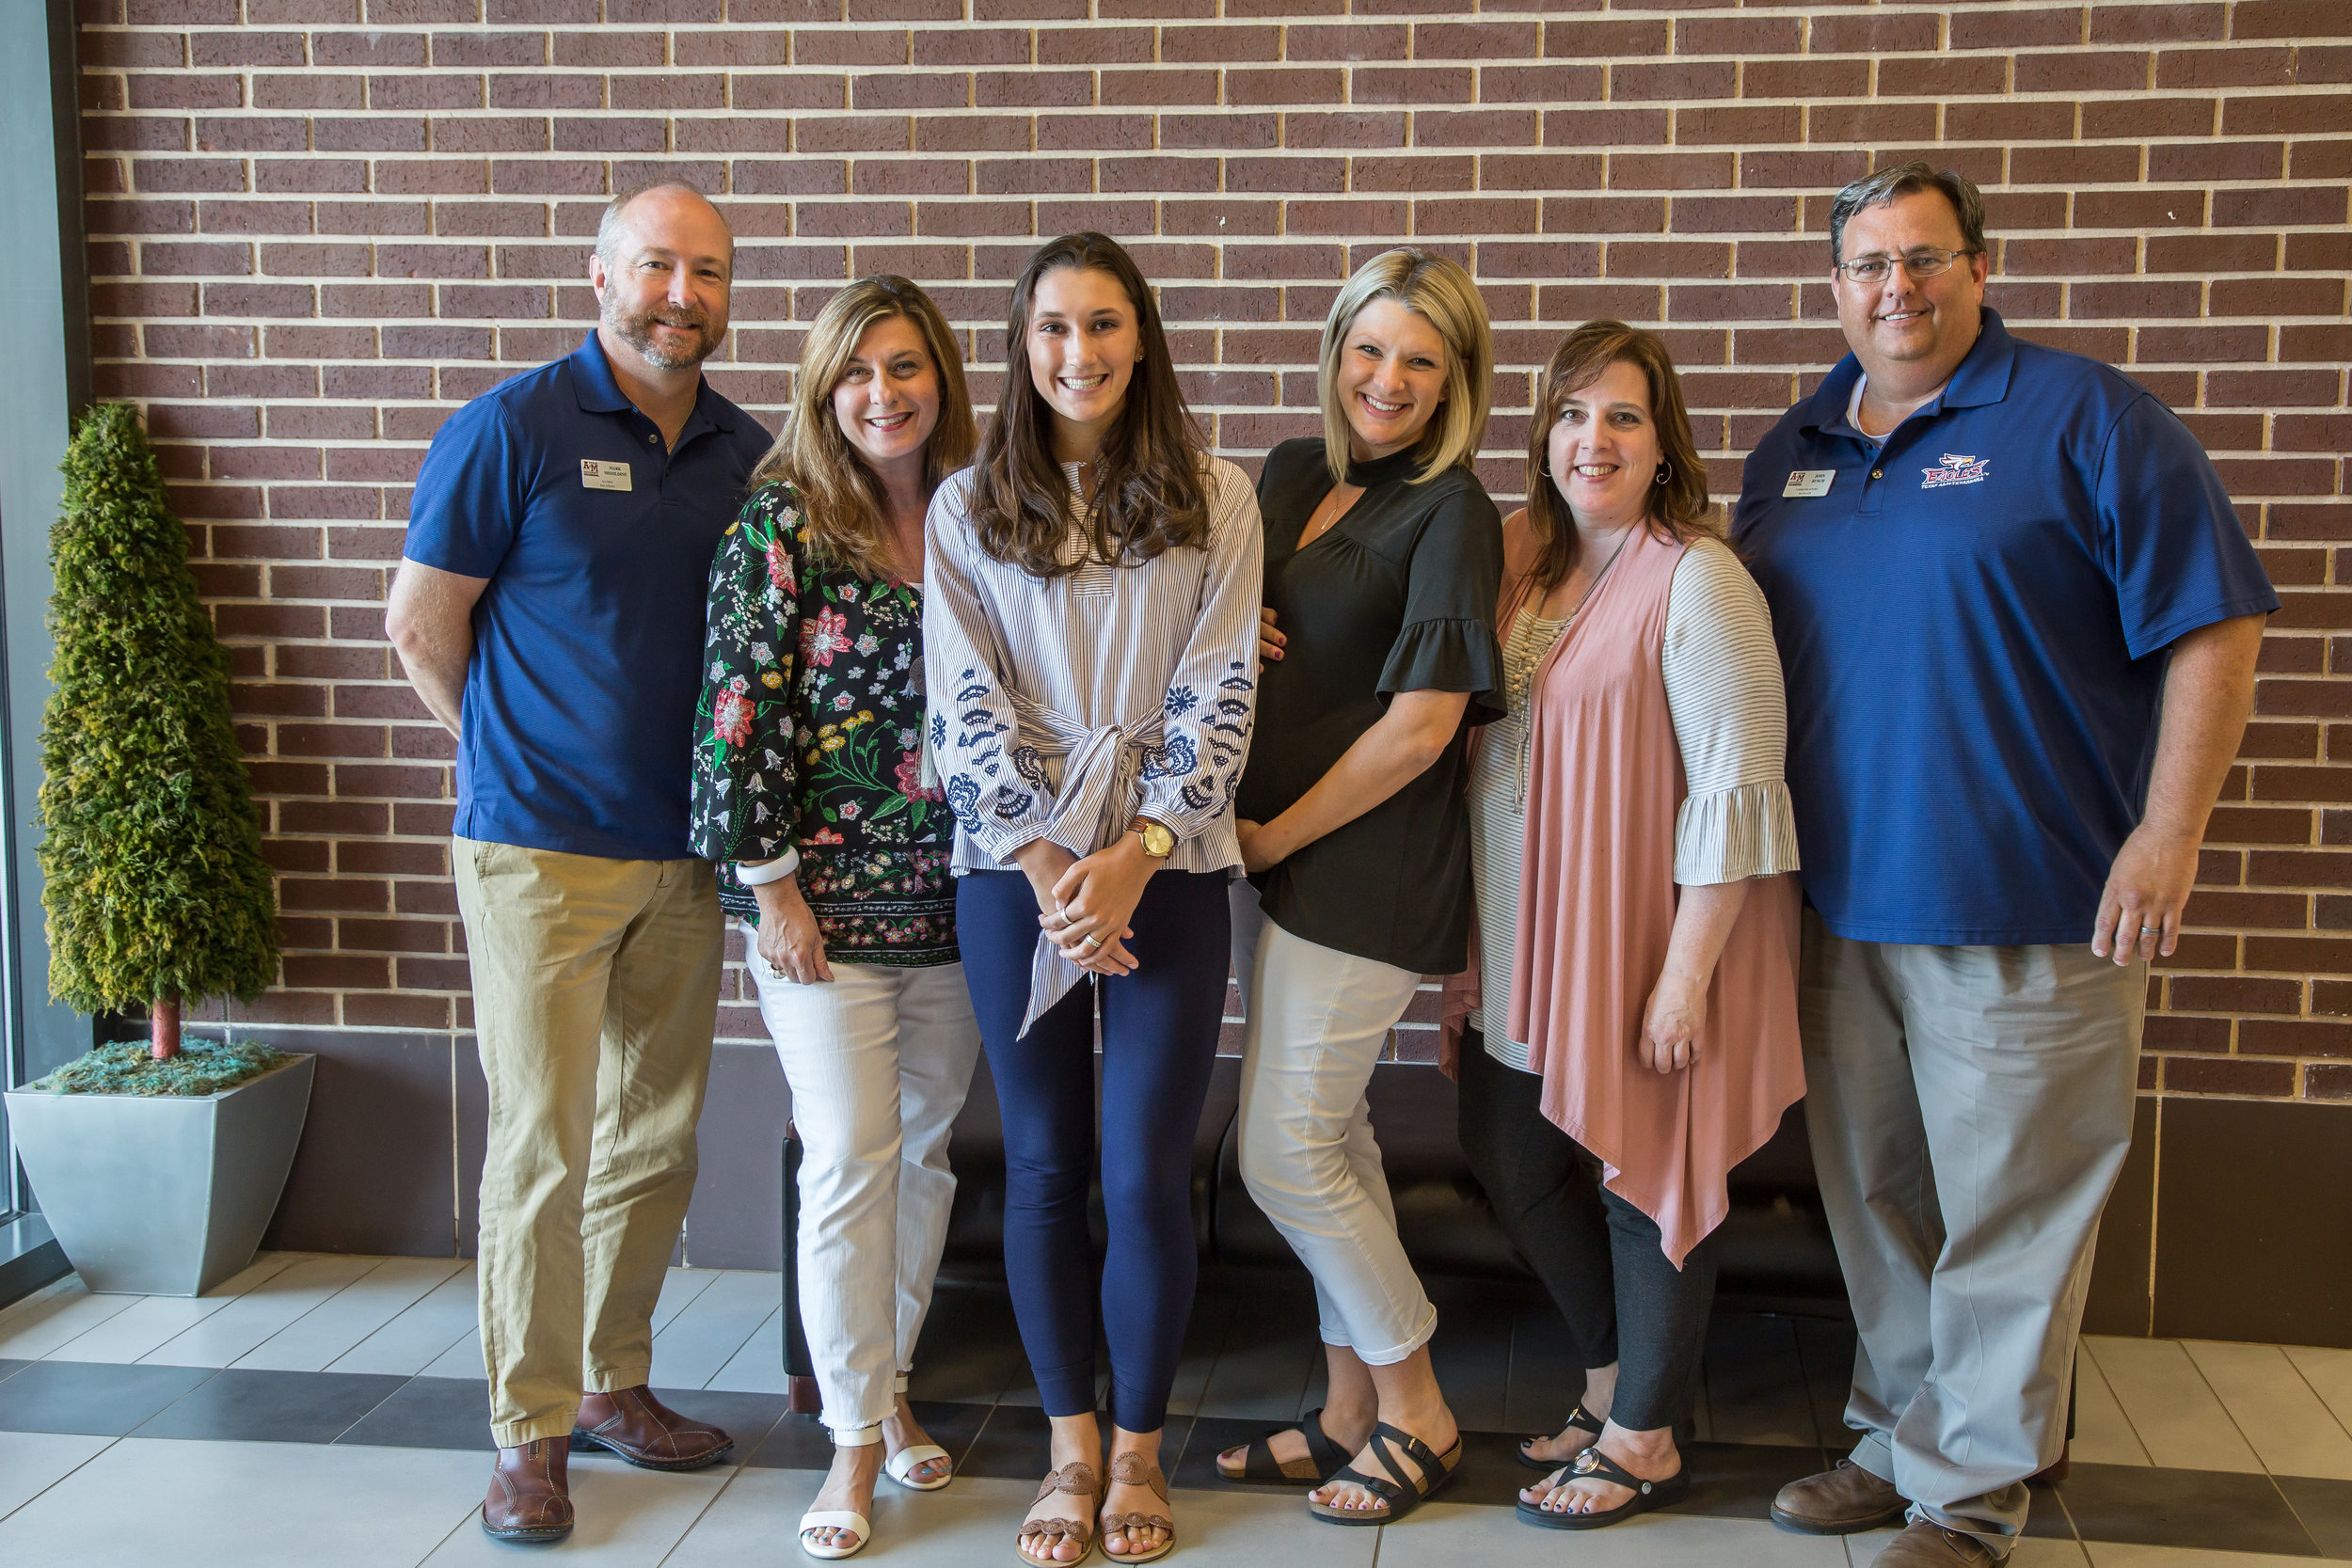 ^ Rebekah (third from left) with some of her coworkers in the University Advancement department at TAMU-T. They include: Mark Missildine, Stacy Glover, Lindsey Clark, Shannon Gustafson and John Bunch. (Not pictured are: LeAnne Wright and Courtney Boeckmann.)